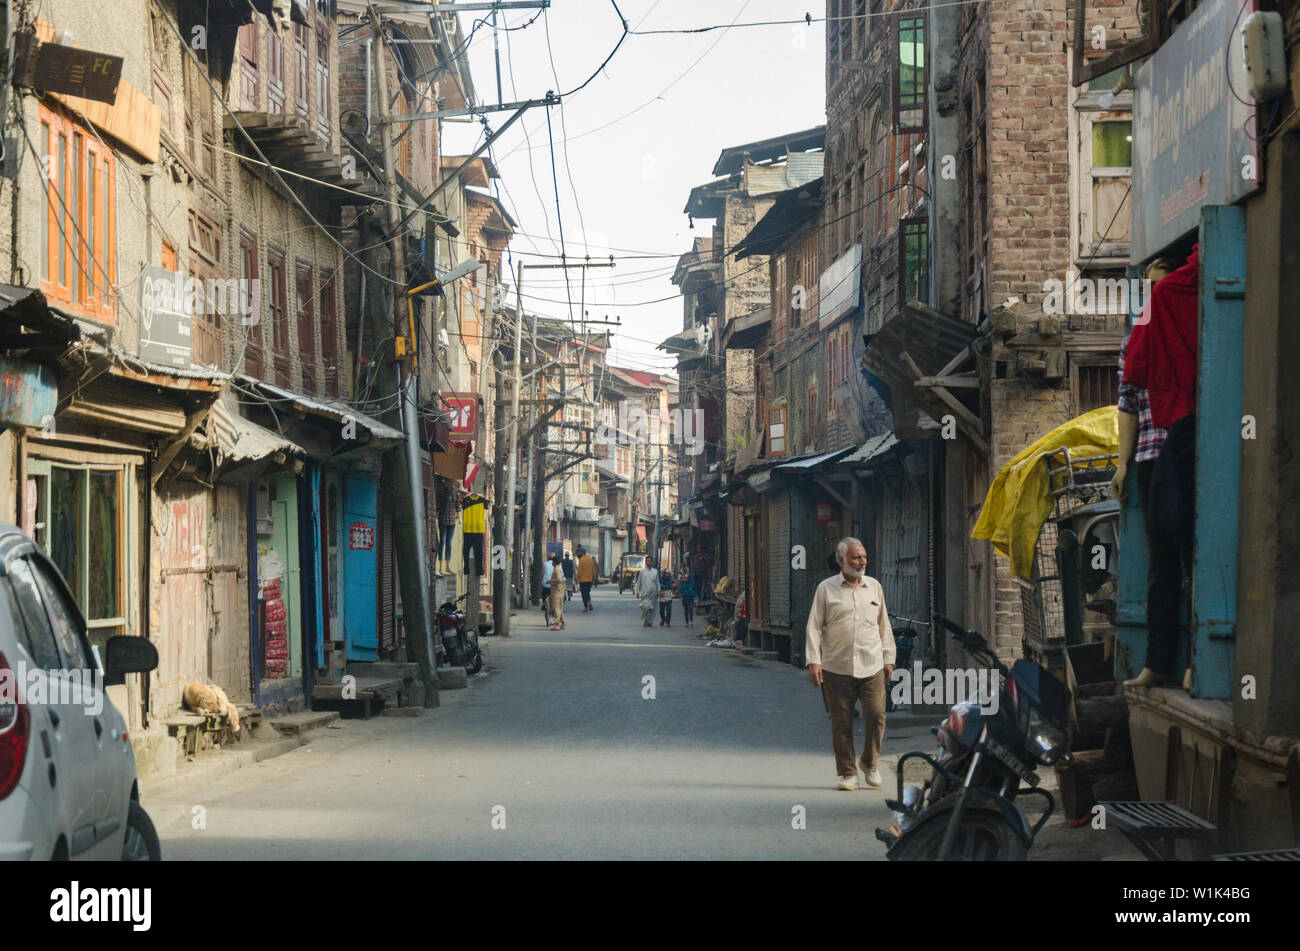 A street filled with abandoned Kashmiri Pandit houses at Habbakadal, Srinagar, Jammu and Kashmir, India Stock Photo